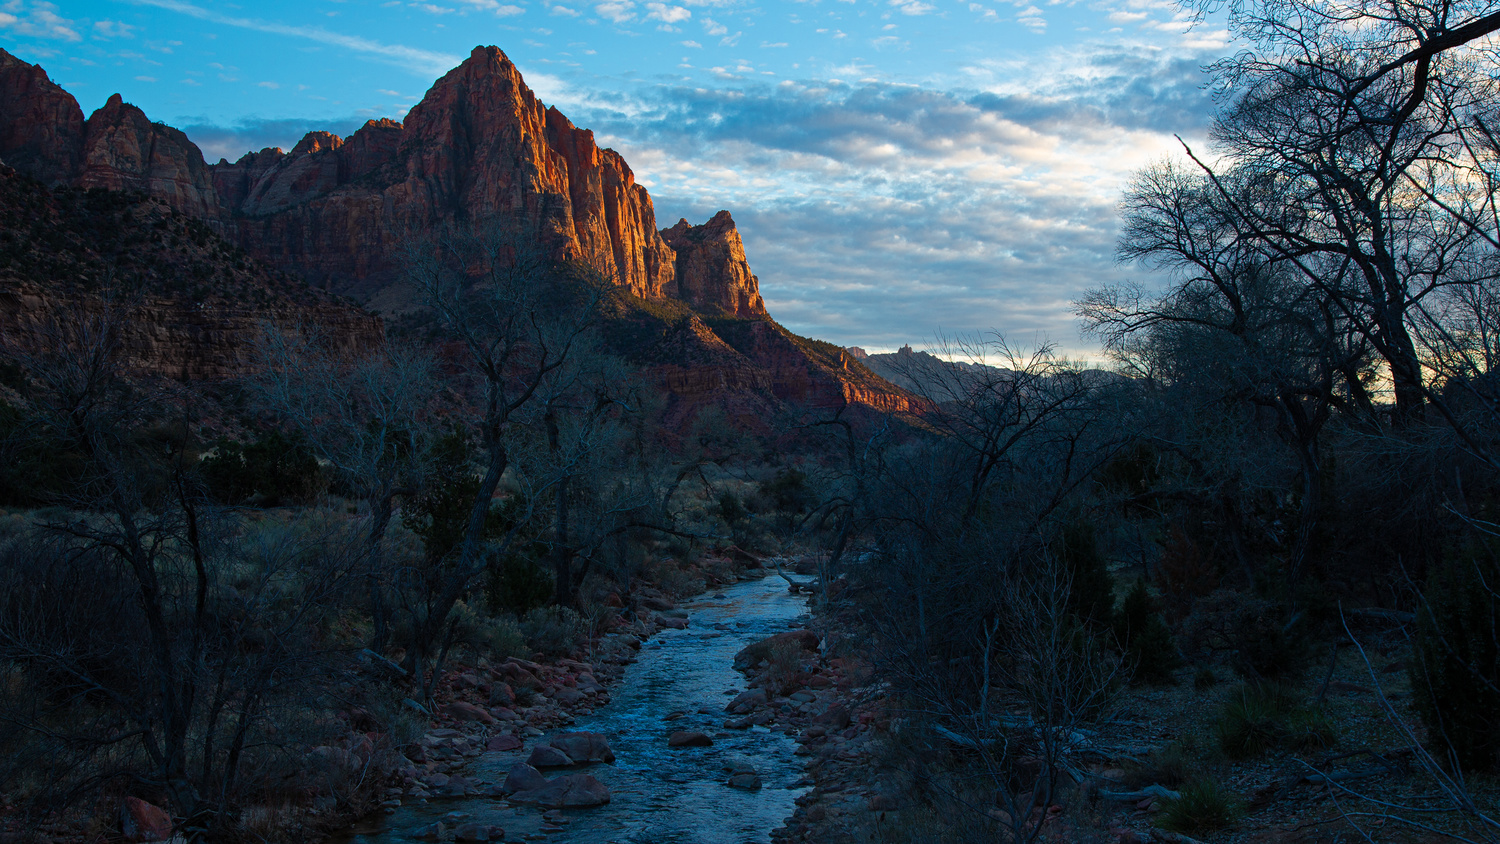 The Watchman by Rick Pappas